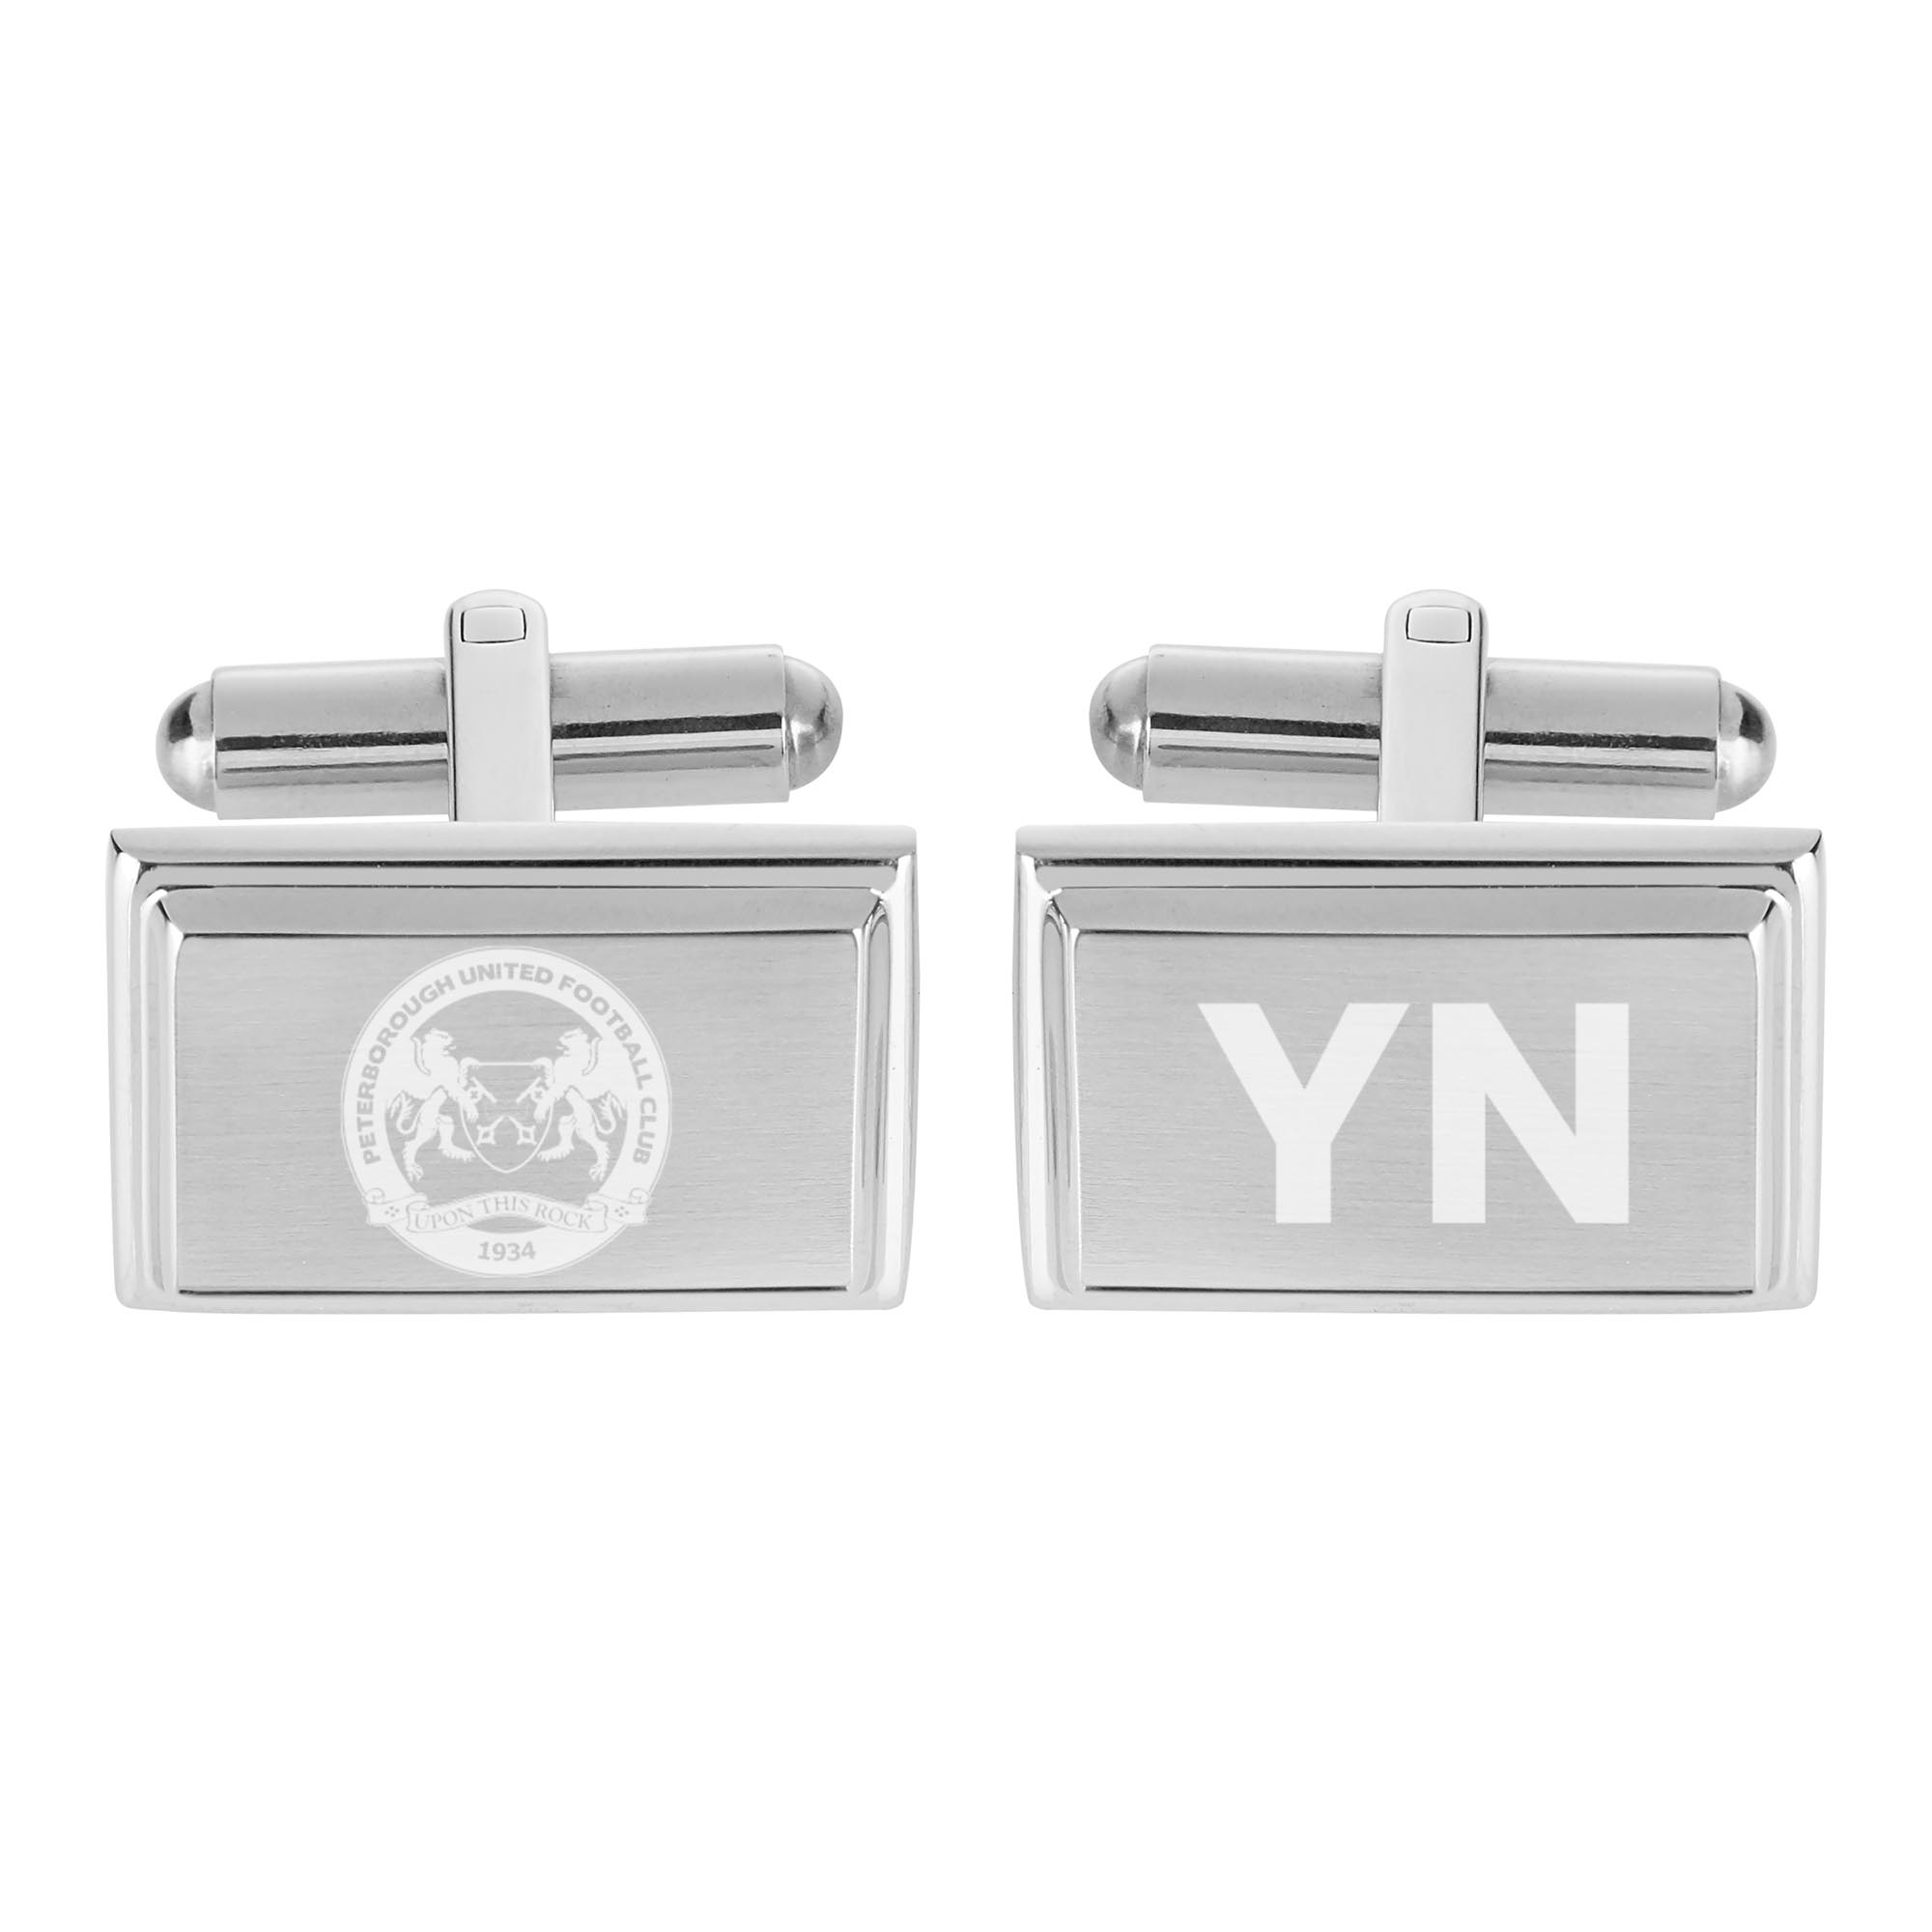 Peterborough United FC Crest Cufflinks